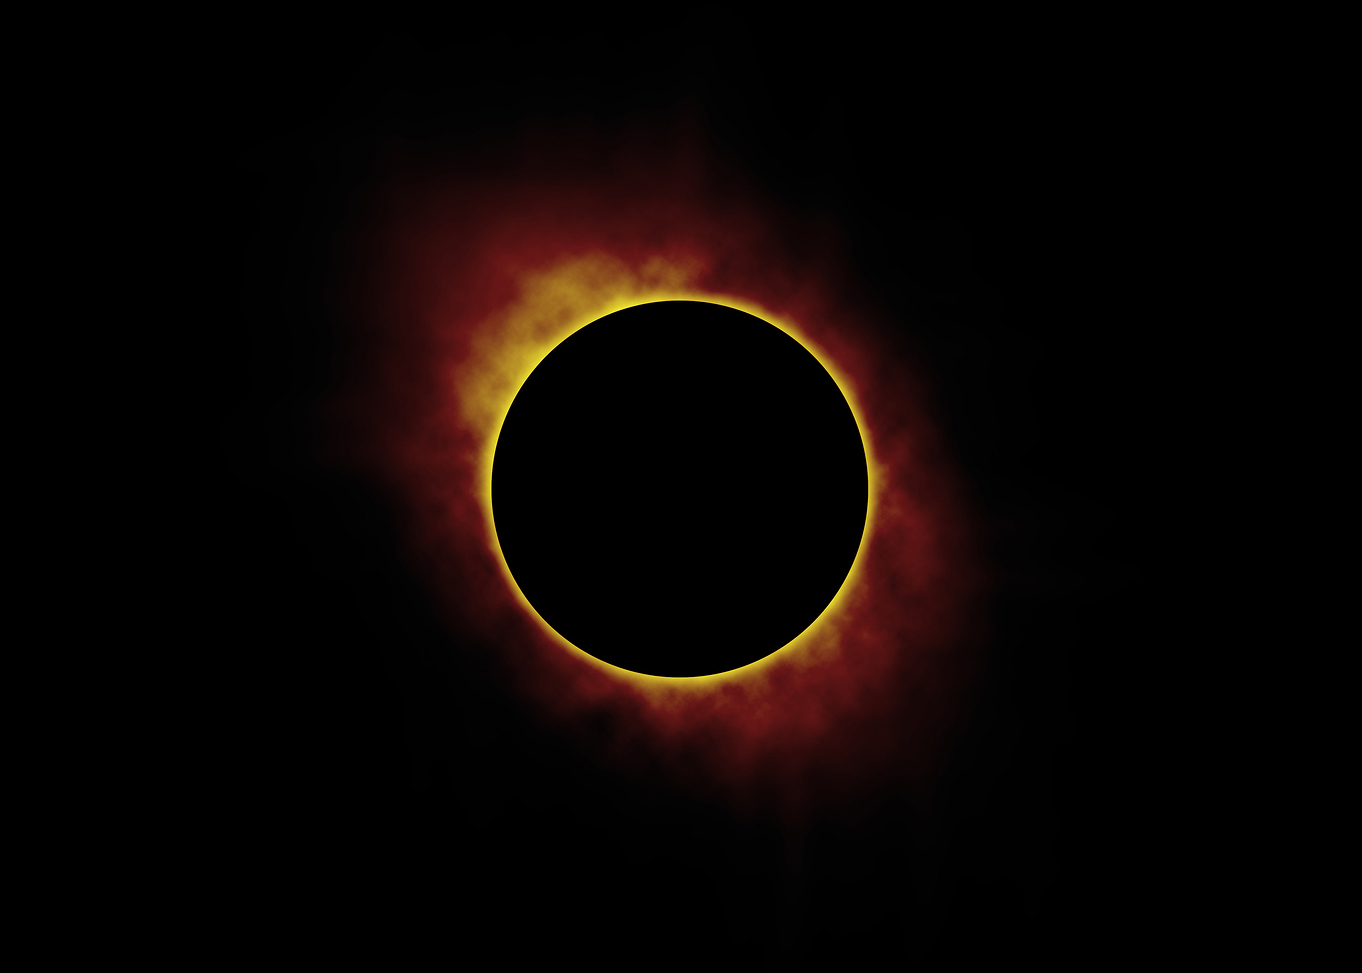 eclipse(700x500)